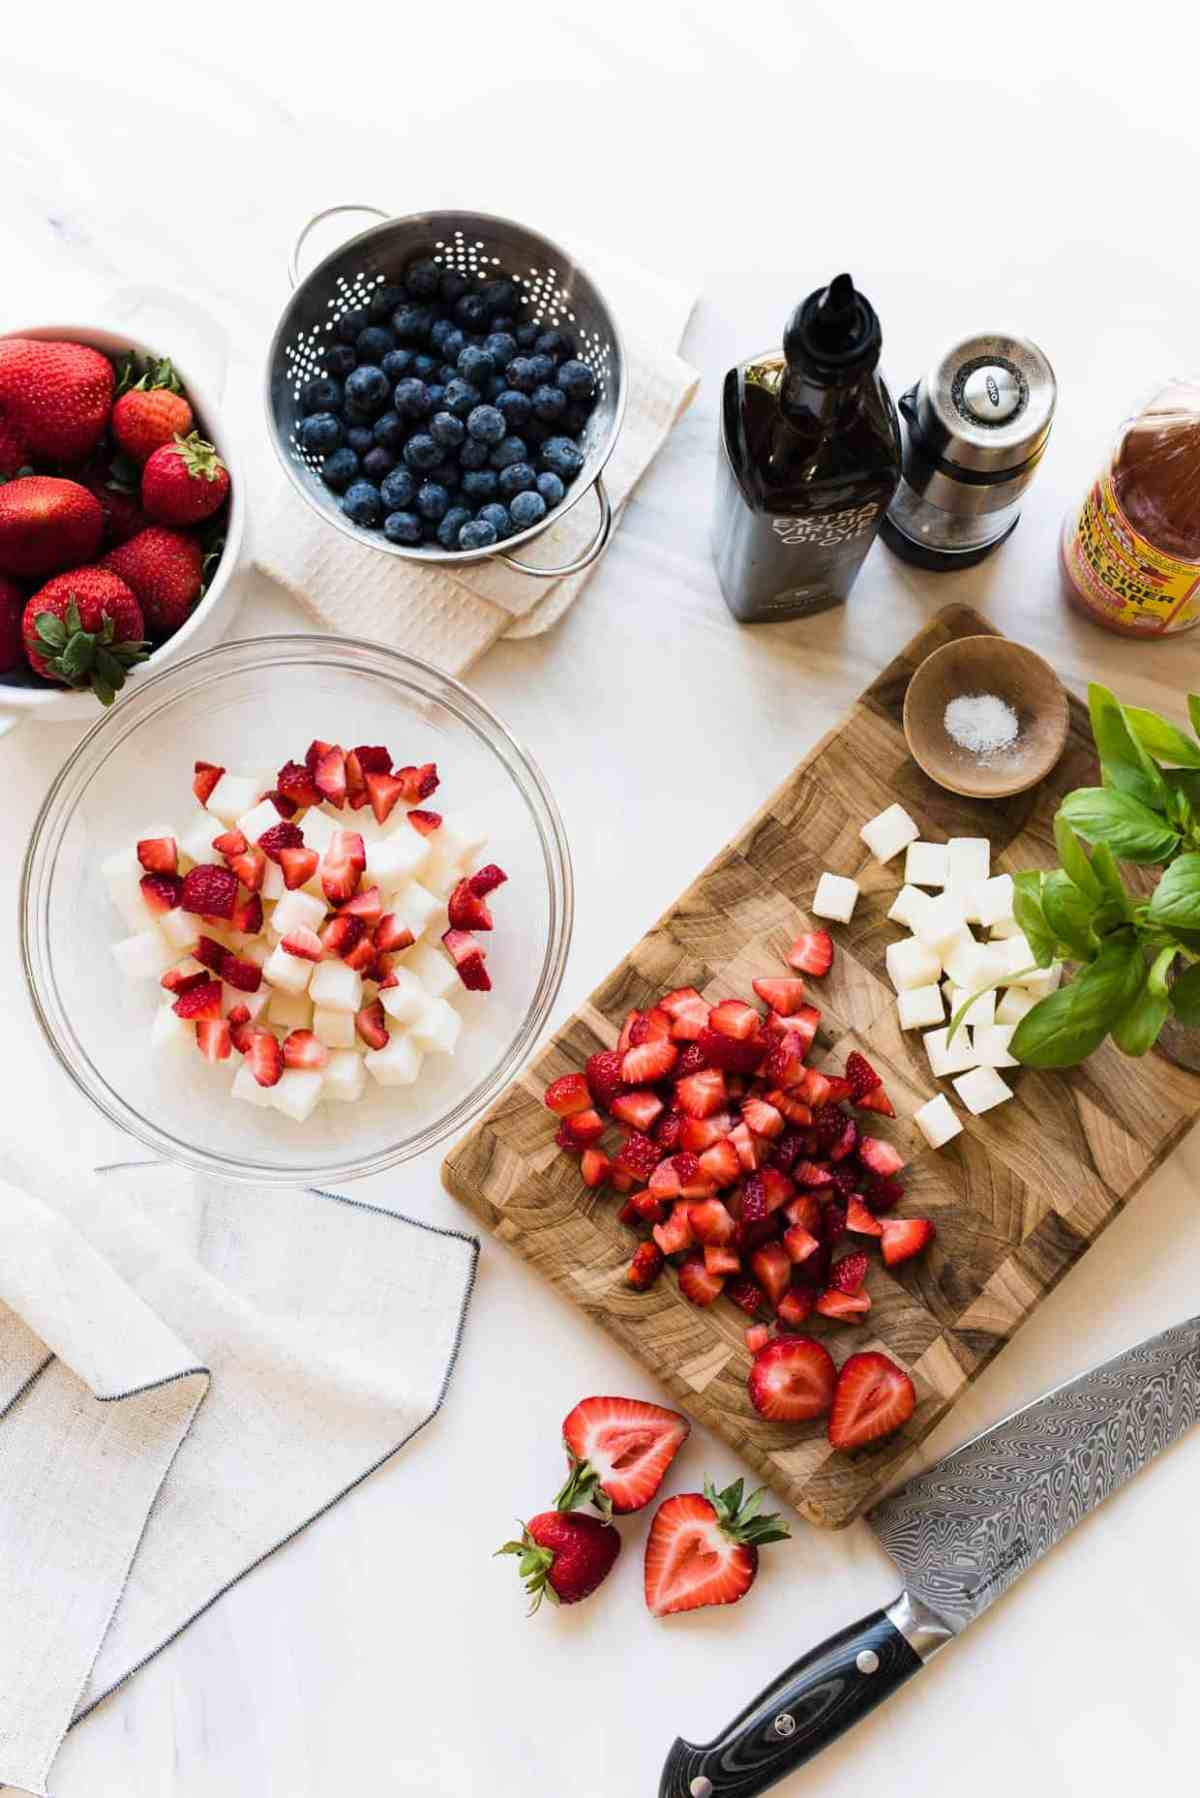 Ingredients for Red White and Blue Berry Jicama Salad.